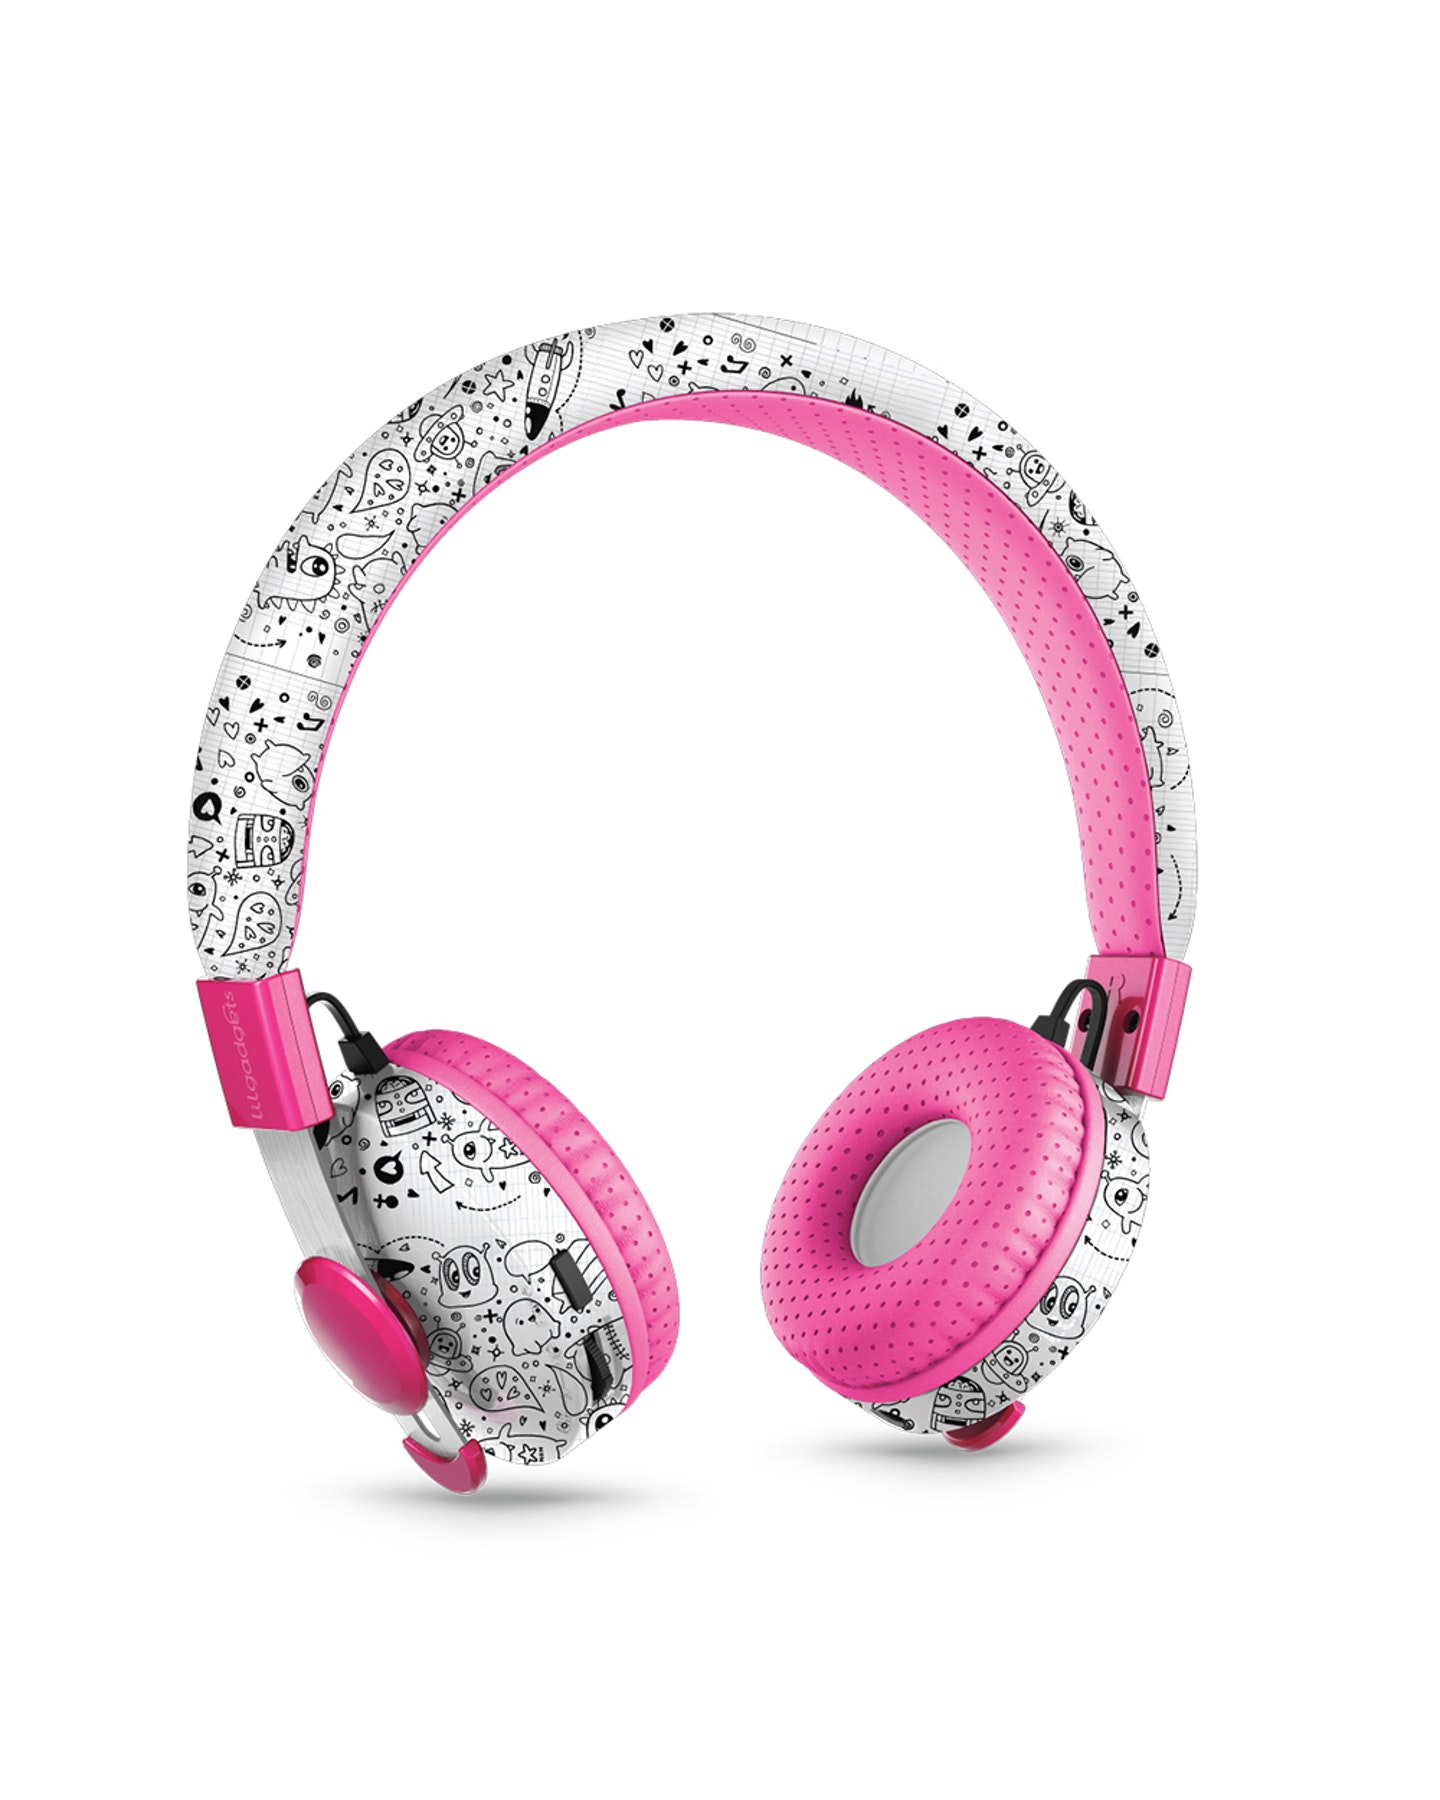 Lil Gadgets Untangled Pro Children'S Wireless Bluetooth Headphones Far Out Doodles Far Out Doodles